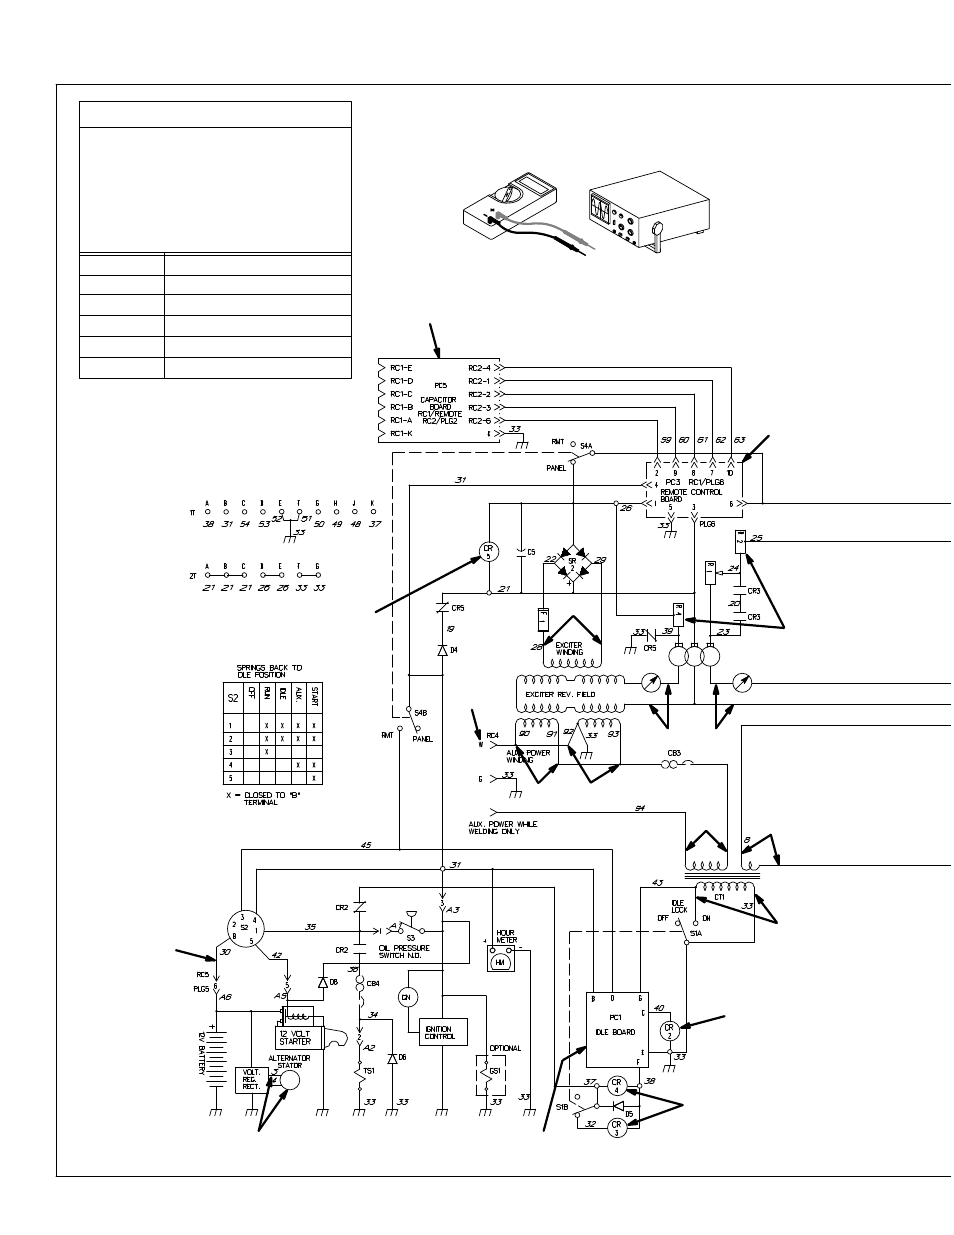 hight resolution of miller electric legend aead 200 le user manual page 24 68 troubleshooting circuit diagram for welding generator miller